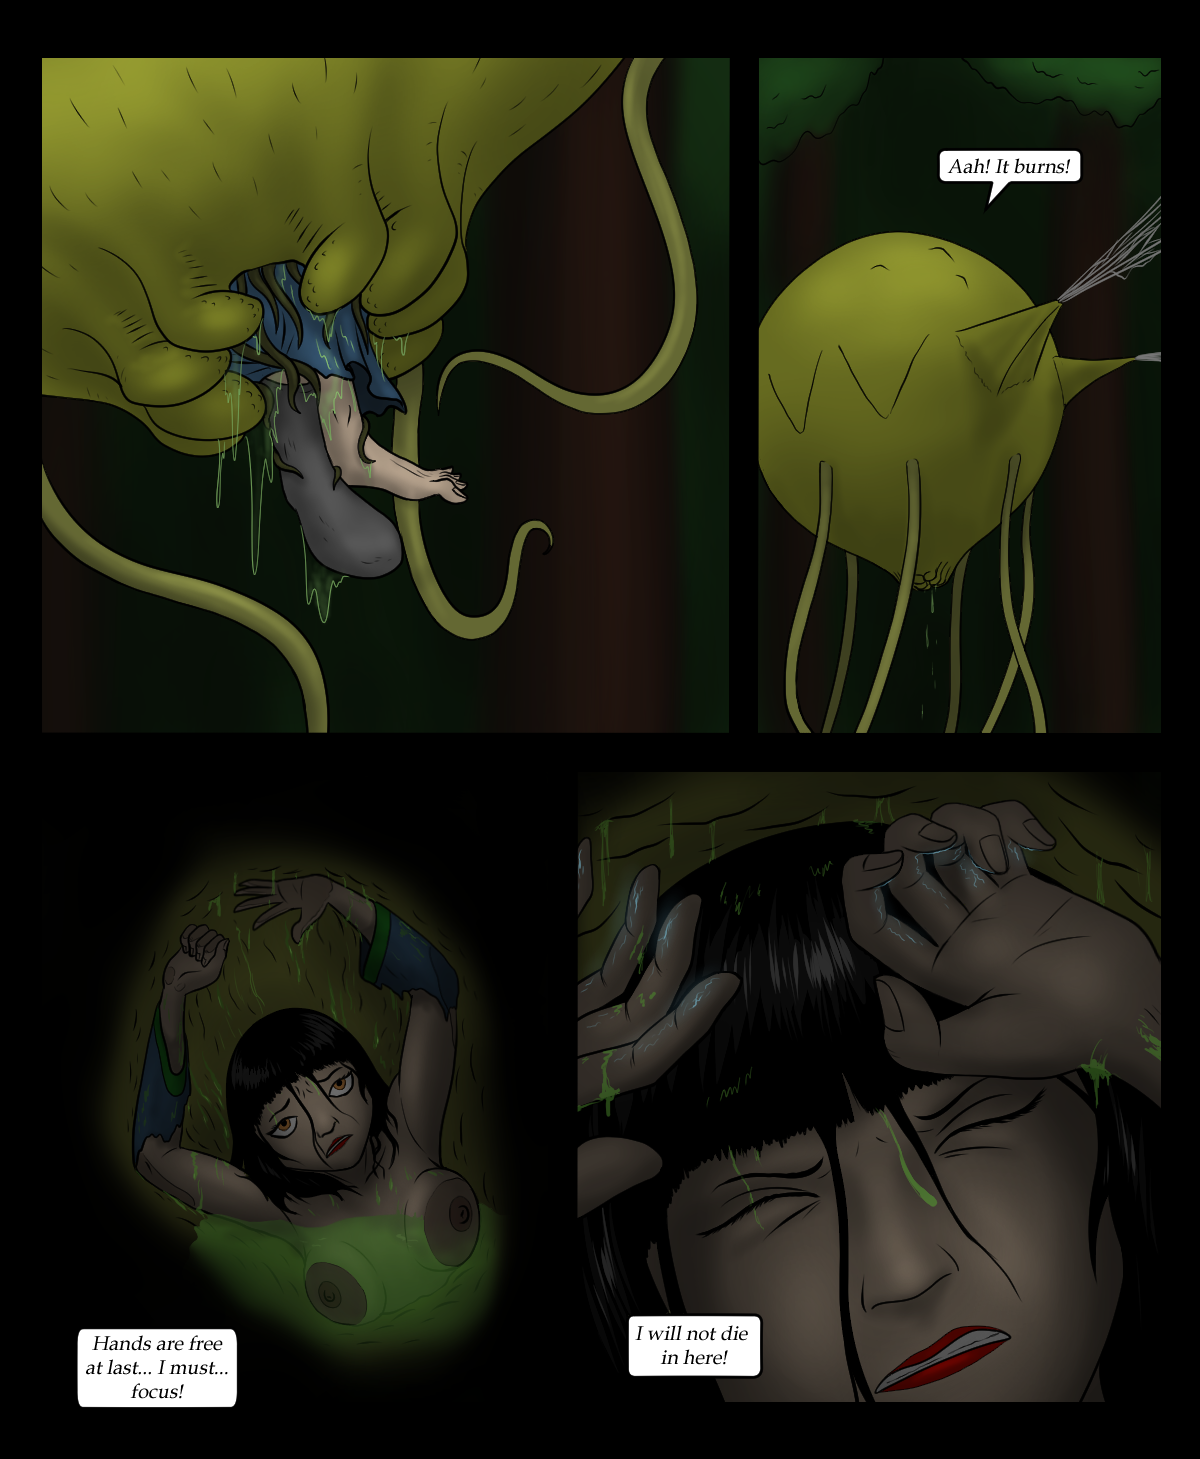 Page 78 - The inside struggle